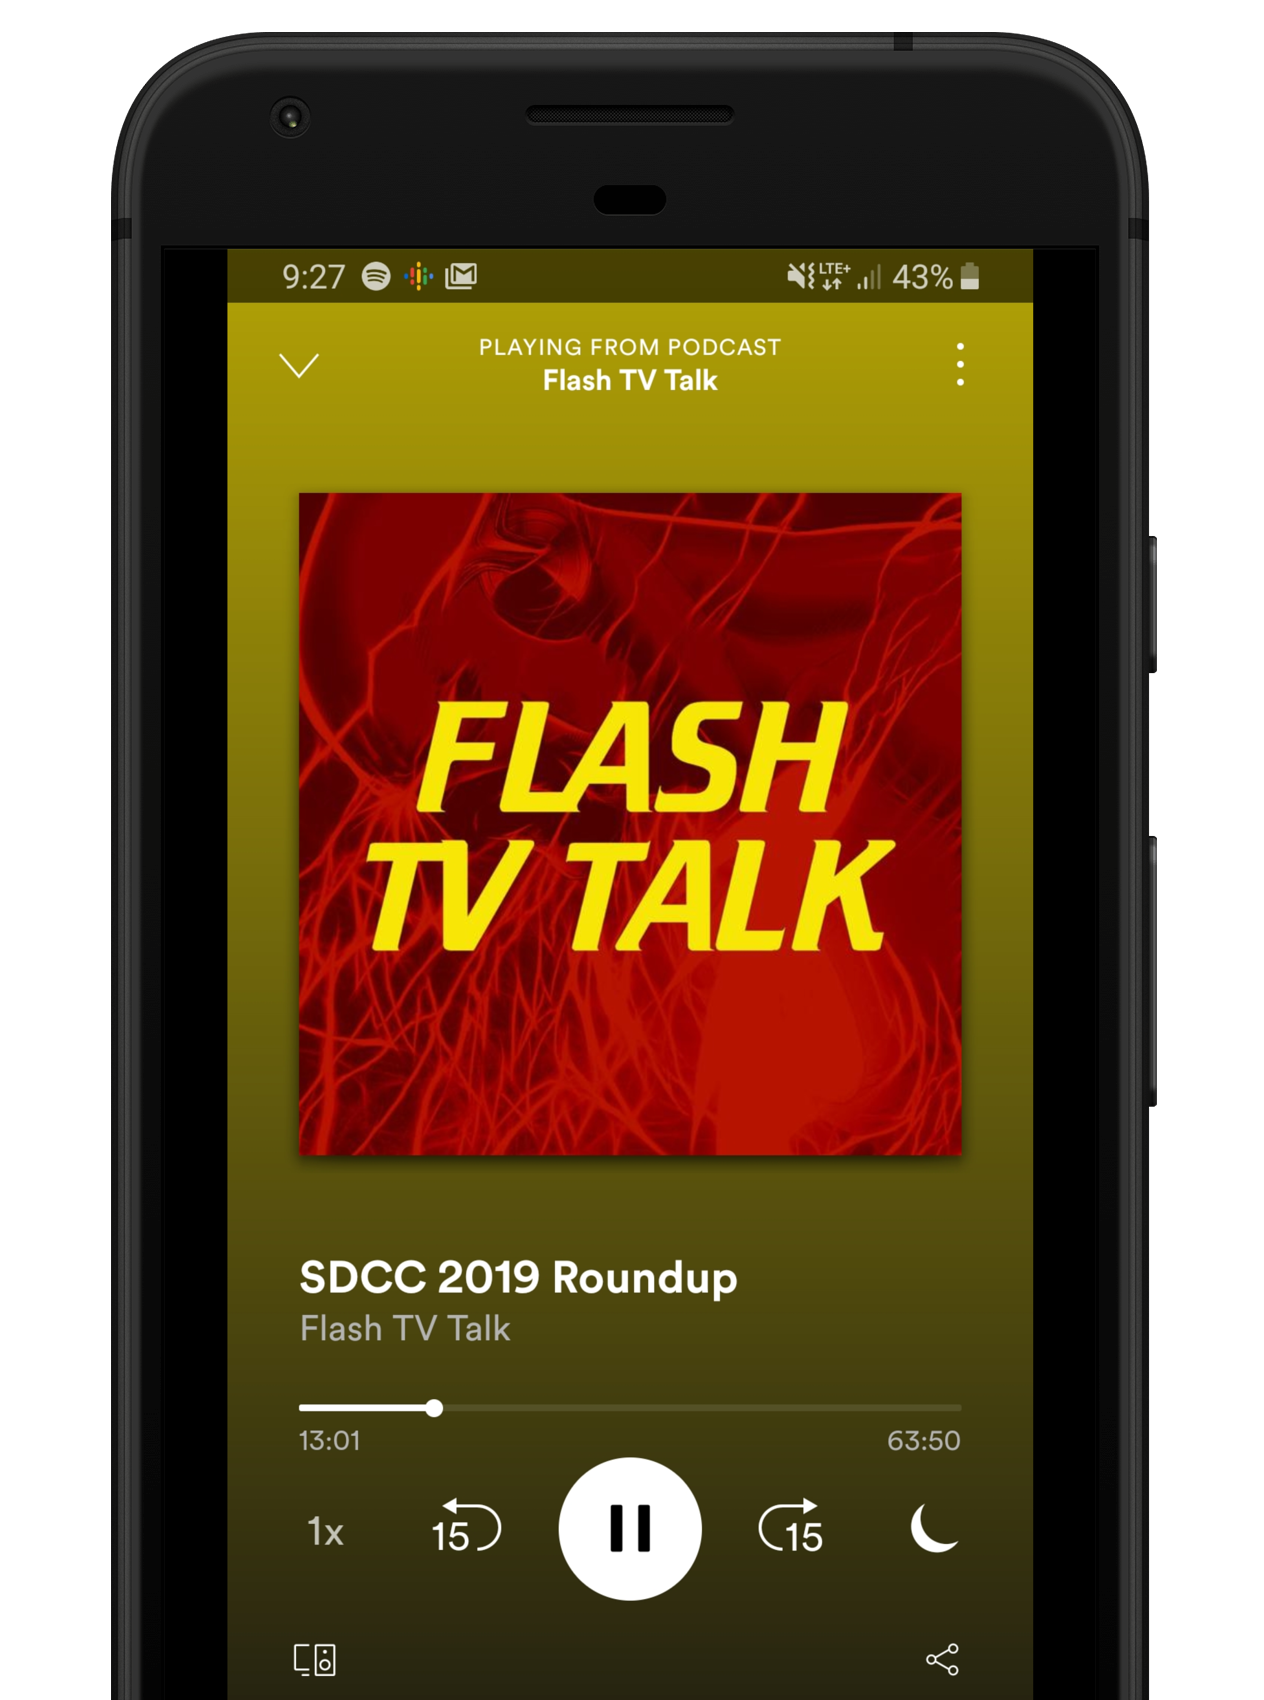 Flash TV Talk - Accelerating Your Fandom With The #1 Rated Flash PodcastA flash podcast dedicated to The CW hit series, The Flash. Every week, hosts Beau and Beall get hyped for The Flash with segments that include: The Rundown, News Flash, Flash Facts, and Flash Points From Around The Multiverse!Subscribe on iTunesSubscribe on SpotifySubscribe on GoogleFull archive available at https://flashtvtalk.fireside.fm/